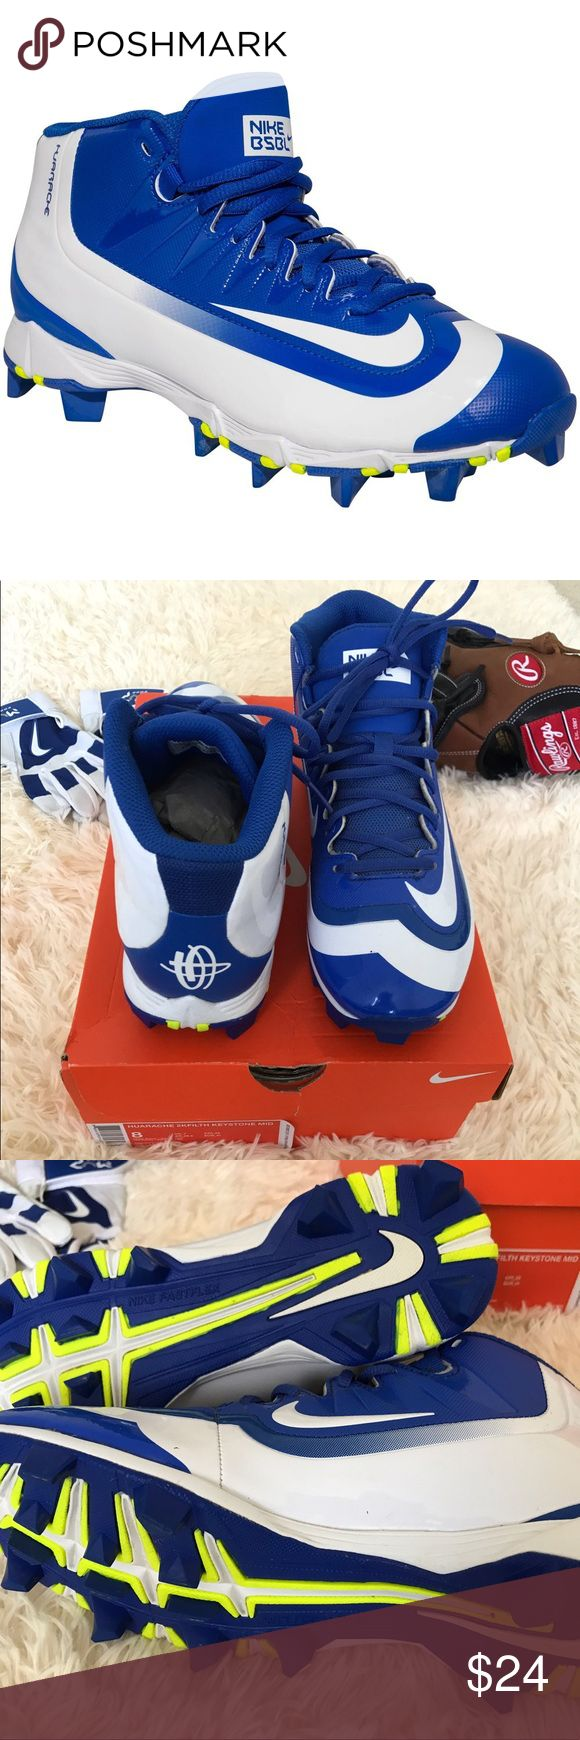 Nike 🔹Huarache 2KFilth Keystone Baseball Cleats⚾️ You will be ready to run the bases or make a big catch when they have the Nike Huarache 2KFilth Keystone baseball cleat on. ⚾️ In great condition 😊 10/10 👍🏽 Clean / Box will be included Color : Blue / White / Yellow  Material :  Low-cut, synthetic leather upper for lightweight support. Mesh collar and tongue ventilate for cool comfort. Solid rubber outsole has 12 carefully positioned cleats. Low-top great ankle mobility and a low to the…